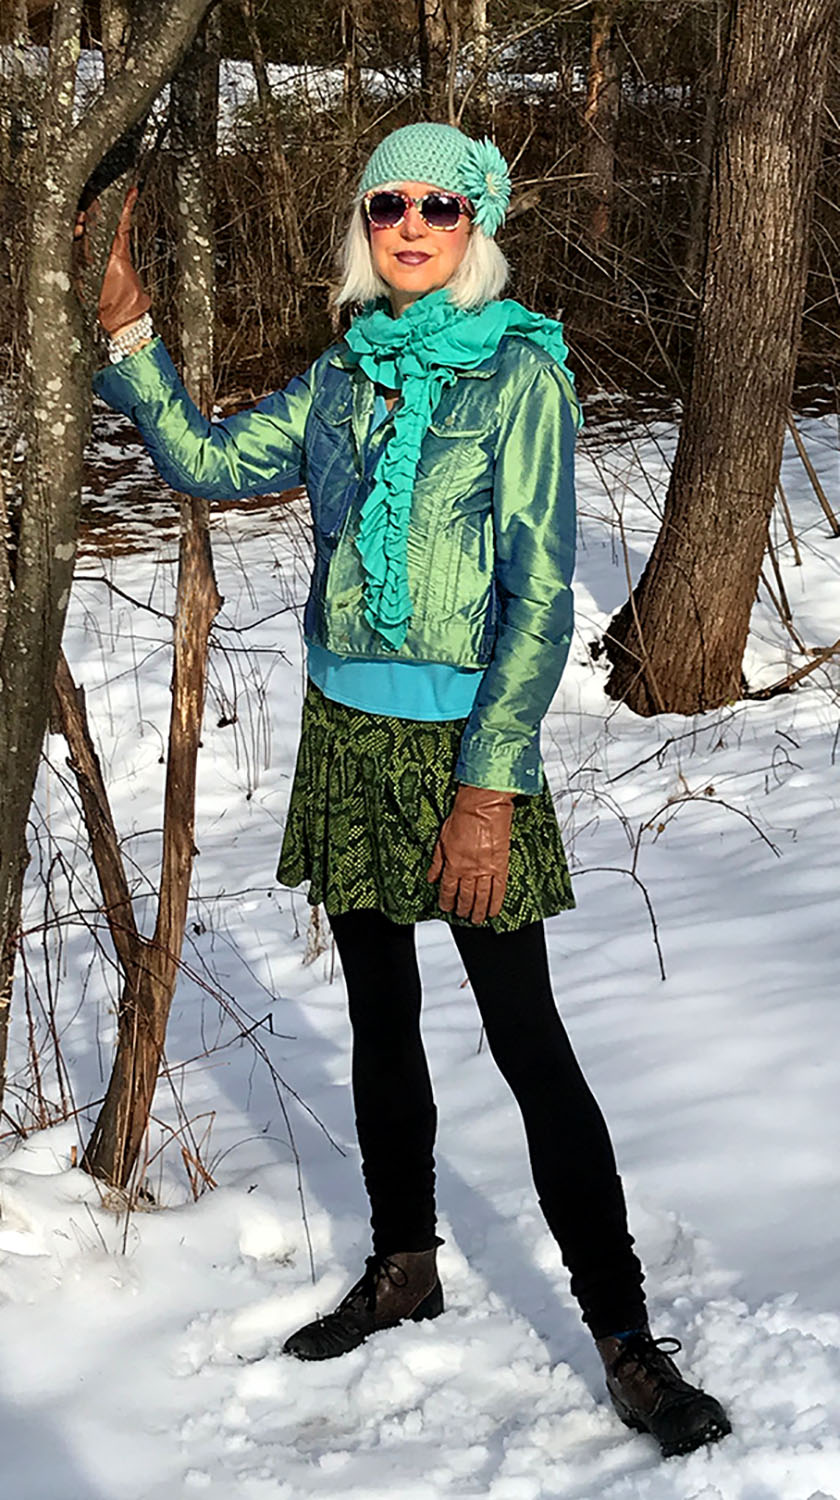 Staying cool in a lime green, silk jacket and green, snake-print skirt from local consignment shop, Natalie Dressed.  http://nataliedressed.com  The jacket has a matching skirt, but good things in small doses, right?!  Photo by Frances Rudman